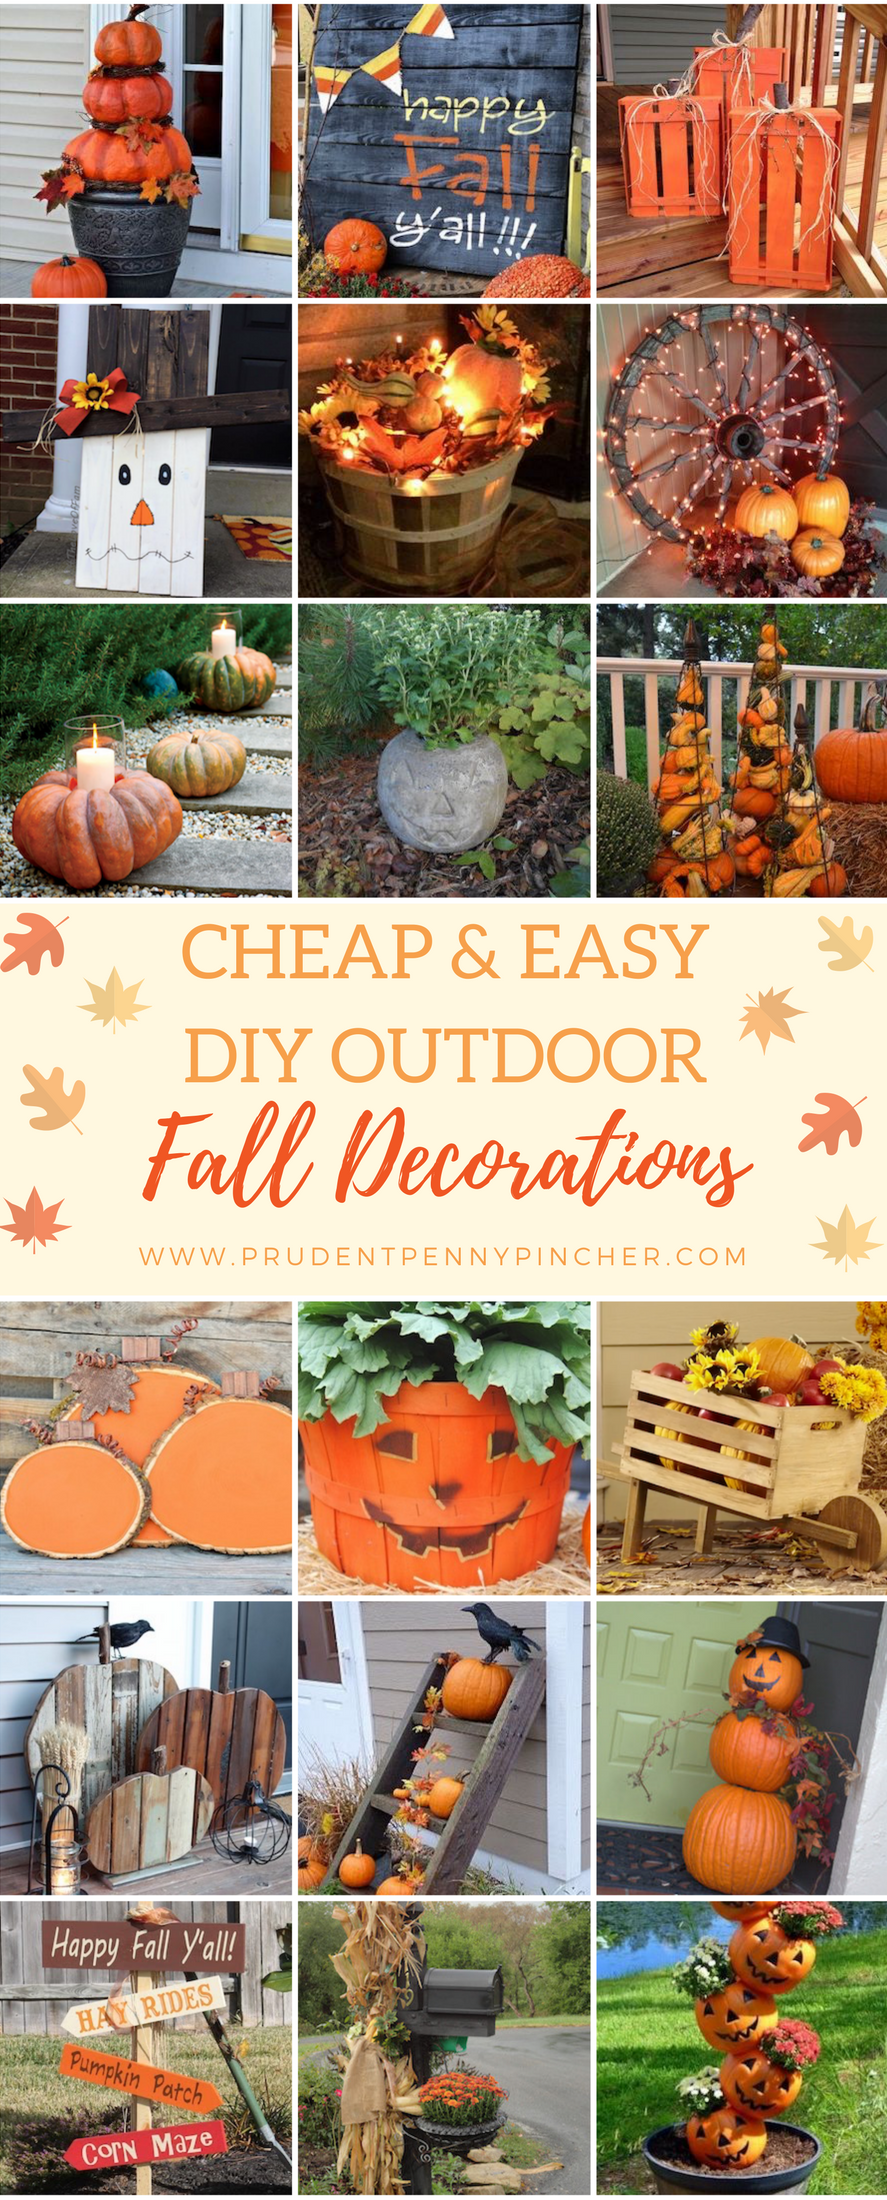 50 Cheap and Easy DIY Outdoor Fall Decorations is part of Clothes Fall DIY - Get your yard ready for Fall with these cheap and easy outdoor fall decor ideas  Whether it's a yard, garden, or porch display, you're sure to find beautiful fall inspiration for your home here  DIY